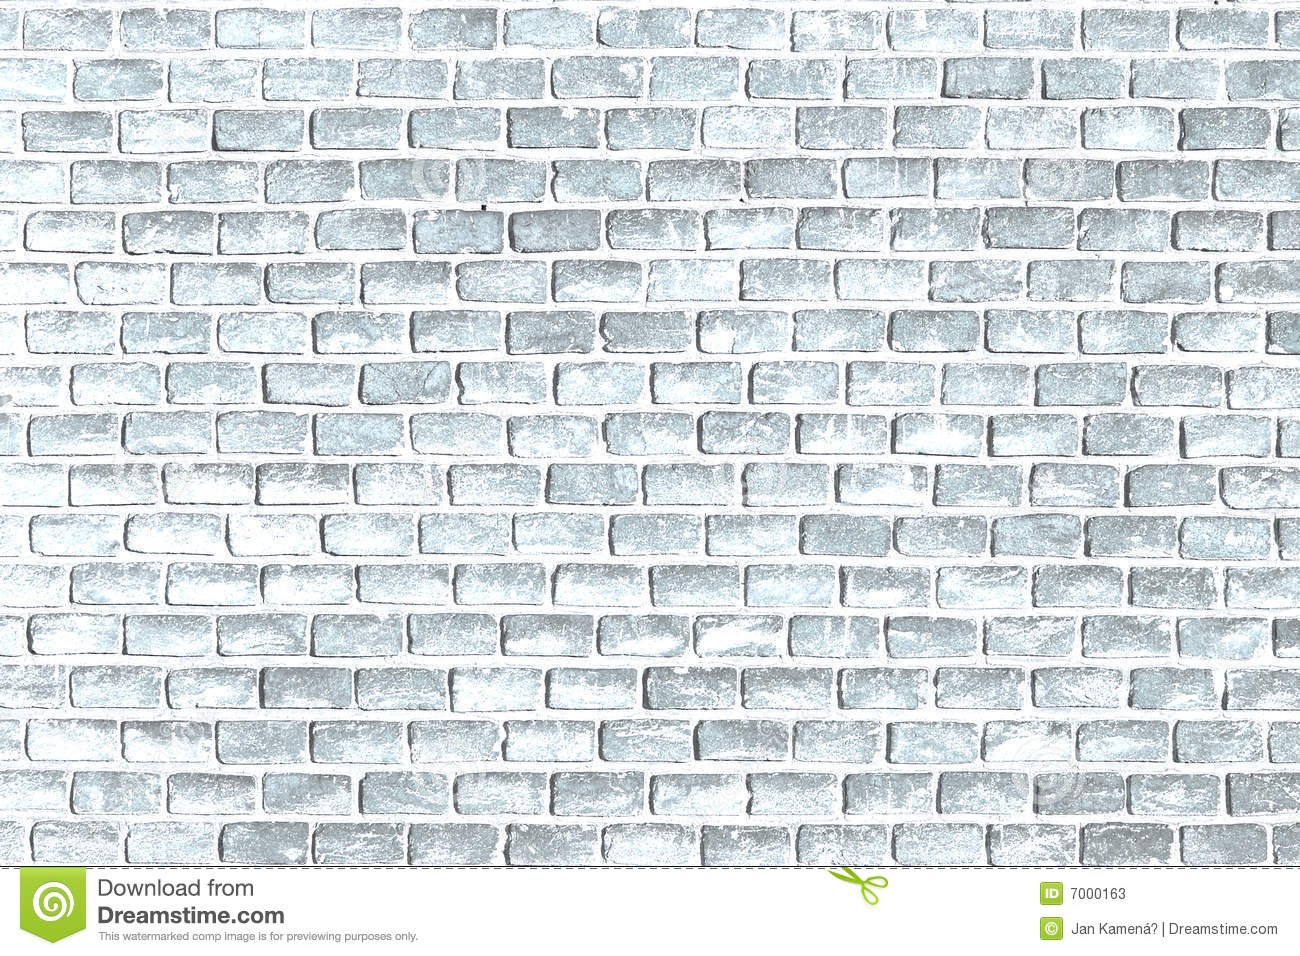 Brick Wall, Light Background Stock Photos - Image: 7000163: www.dreamstime.com/stock-photos-brick-wall-light-background...